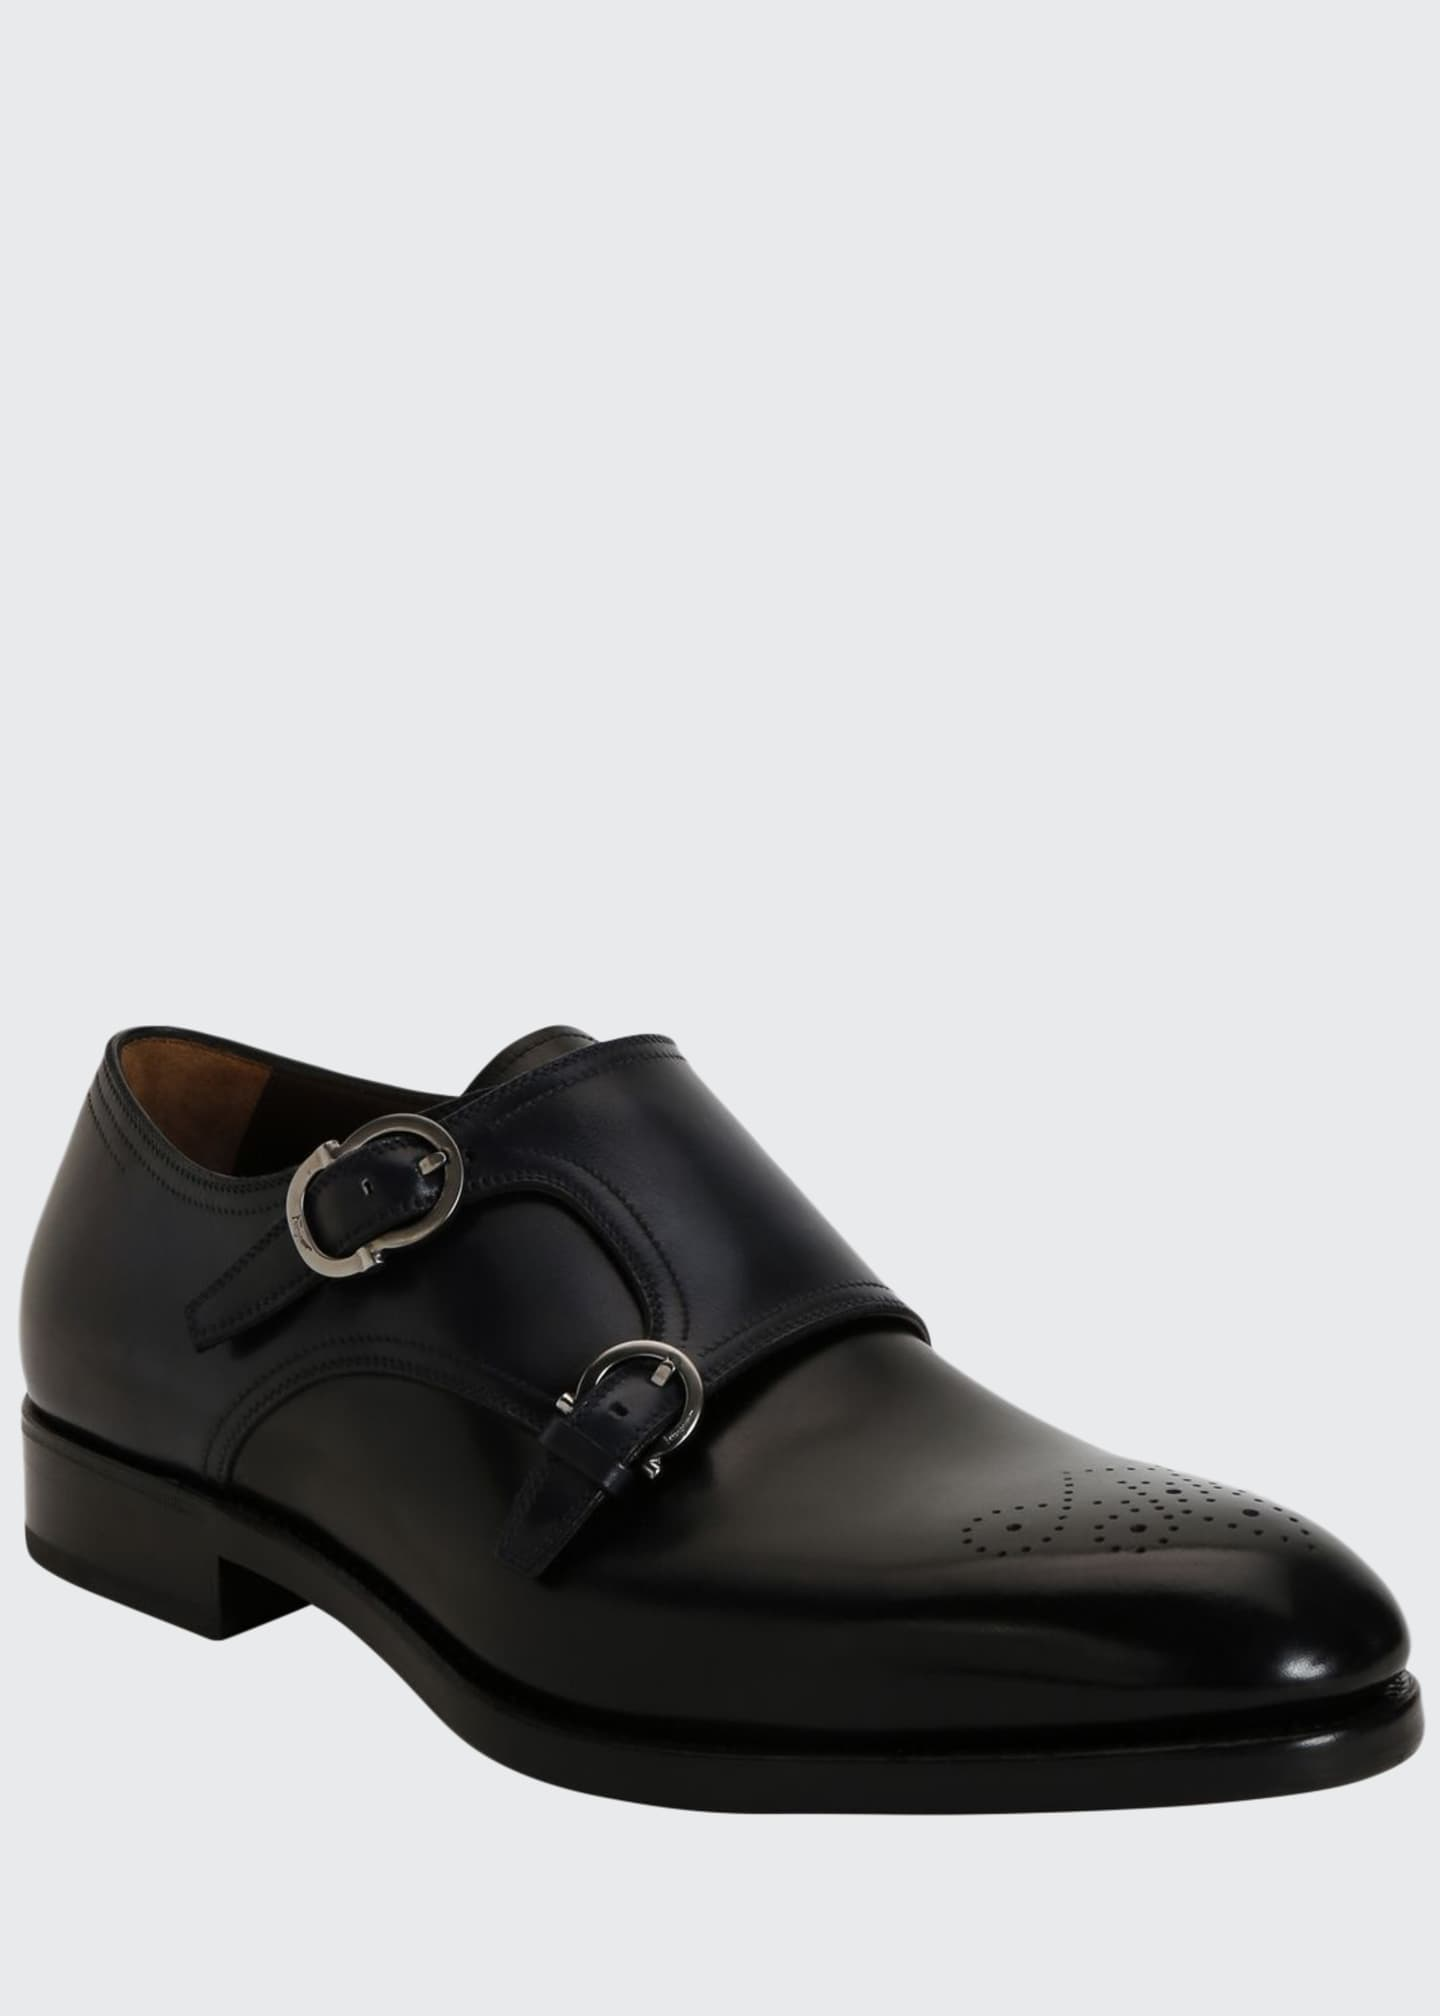 Salvatore Ferragamo Men's Brighton Tramezza Double-Monk Leather